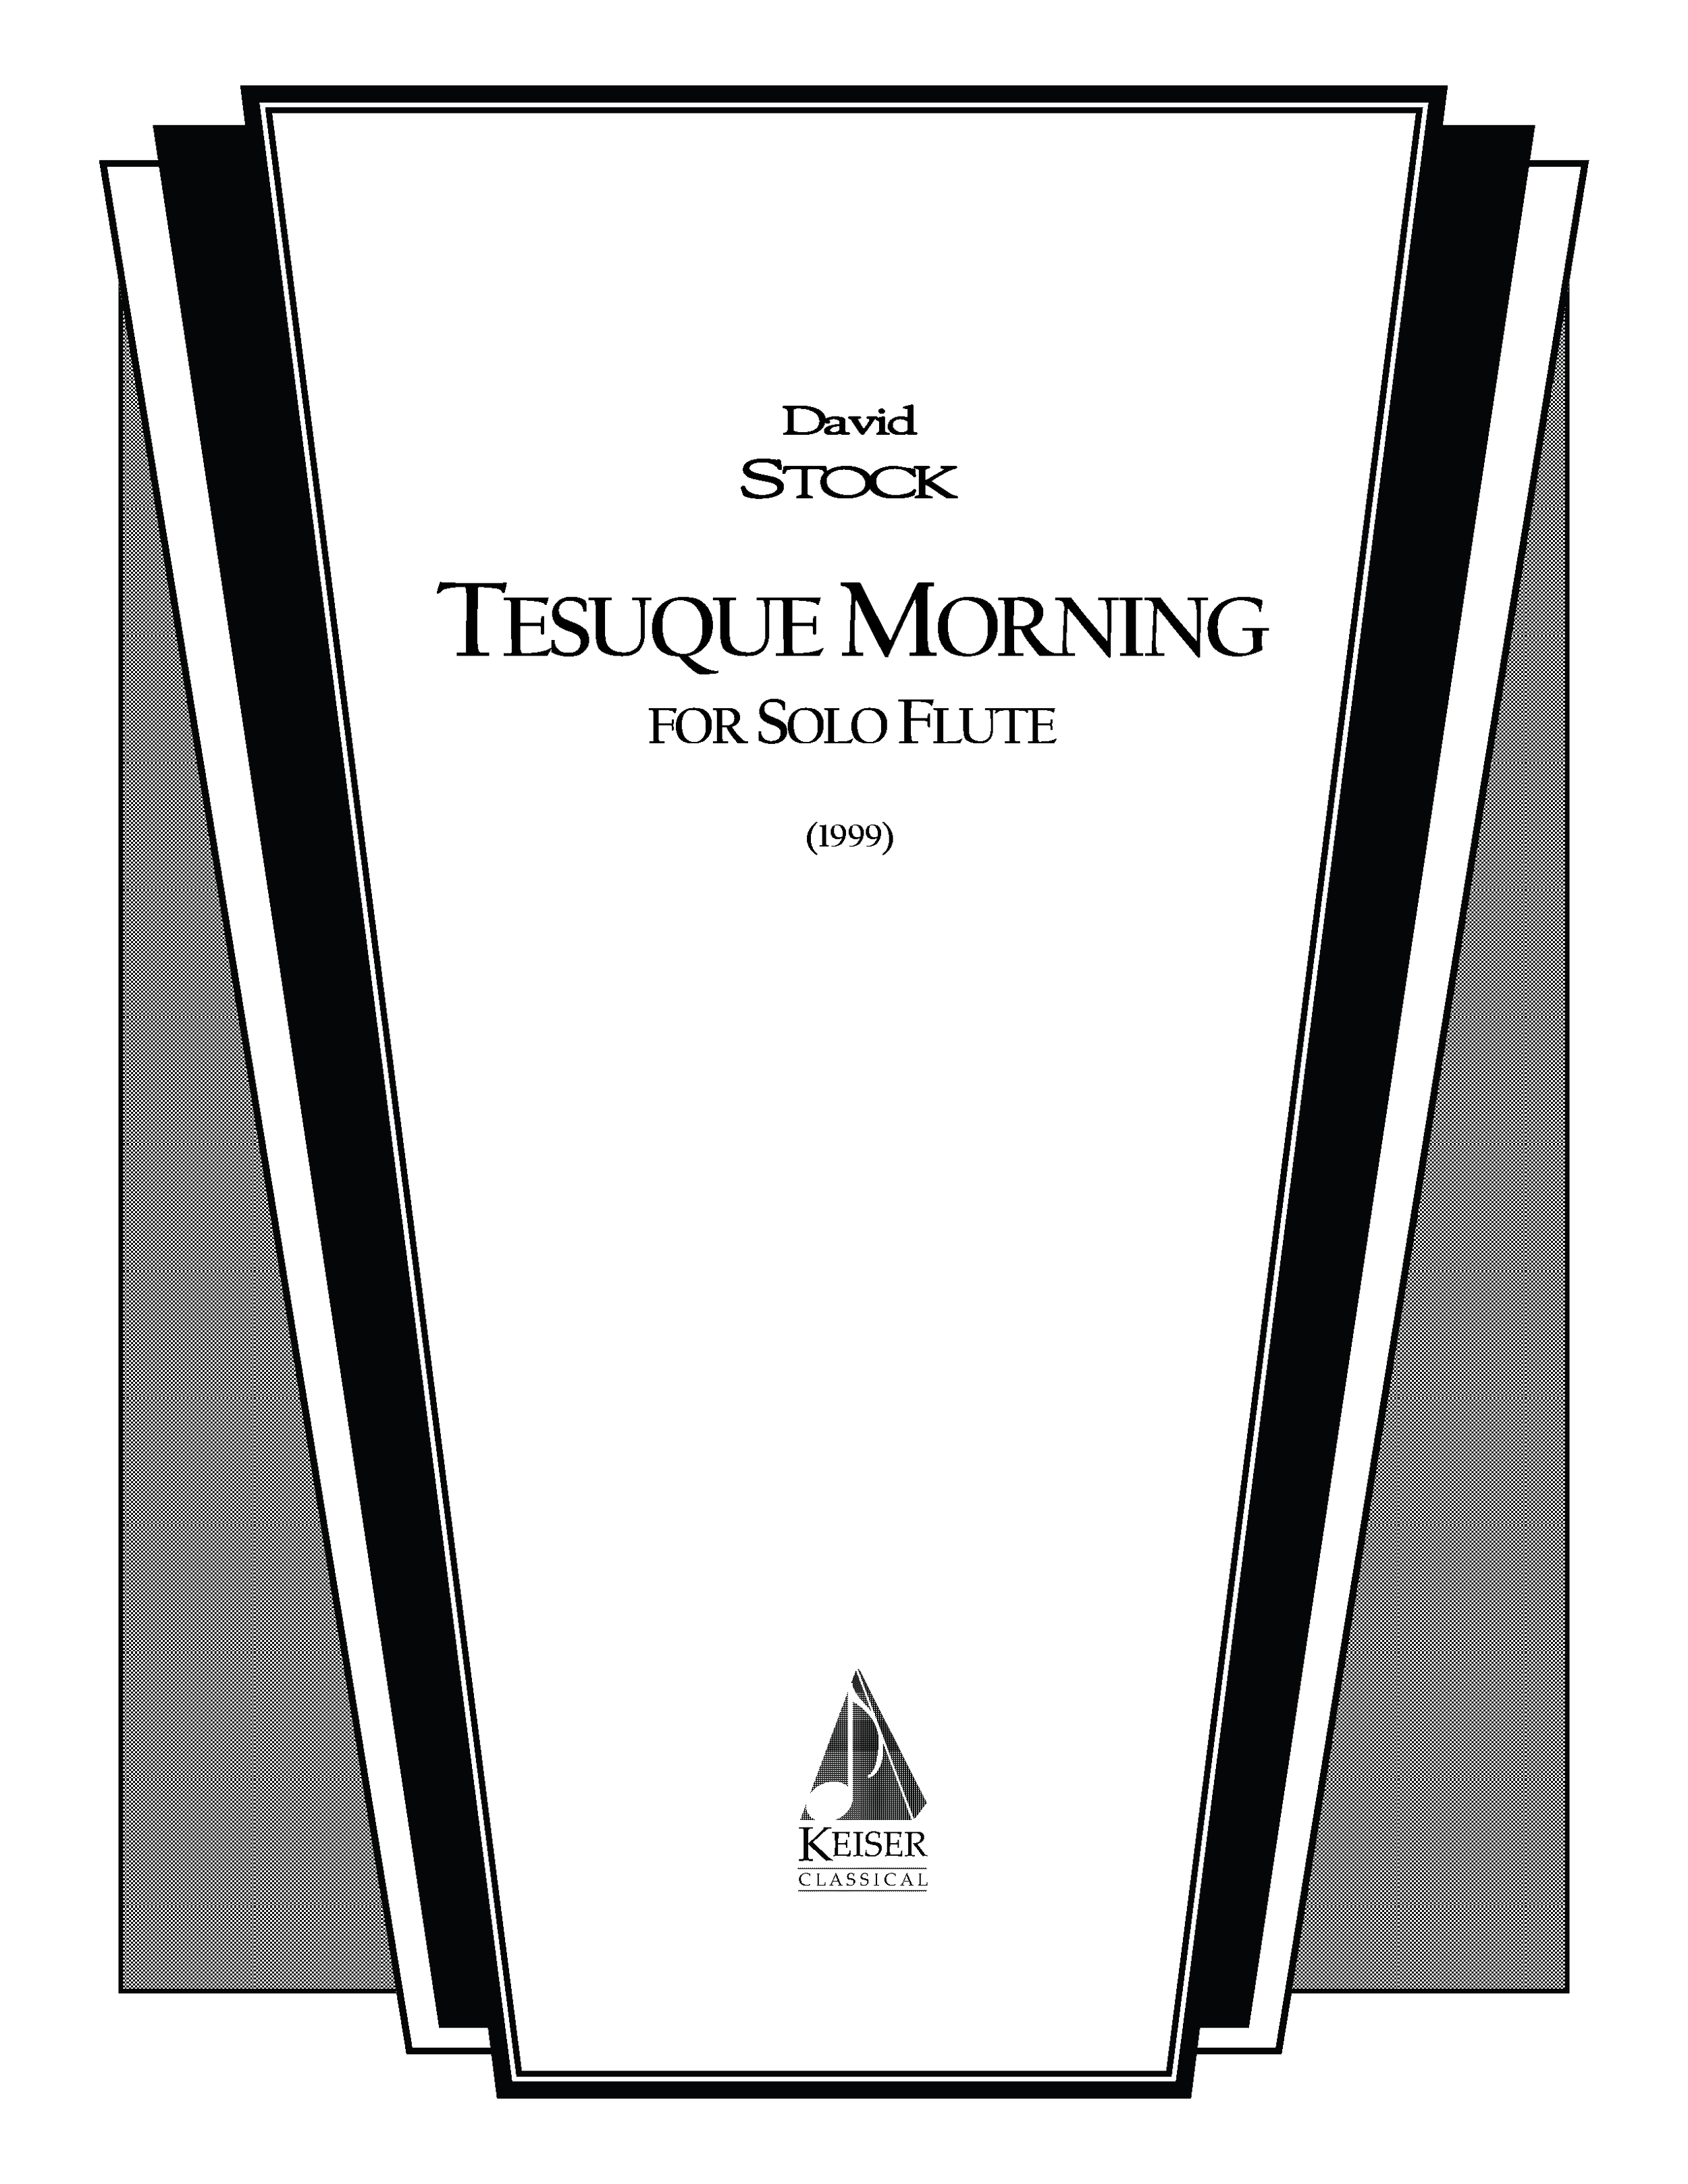 Tesuque Morning (1999) - Flute SoloRent/Buy: Keiser Music